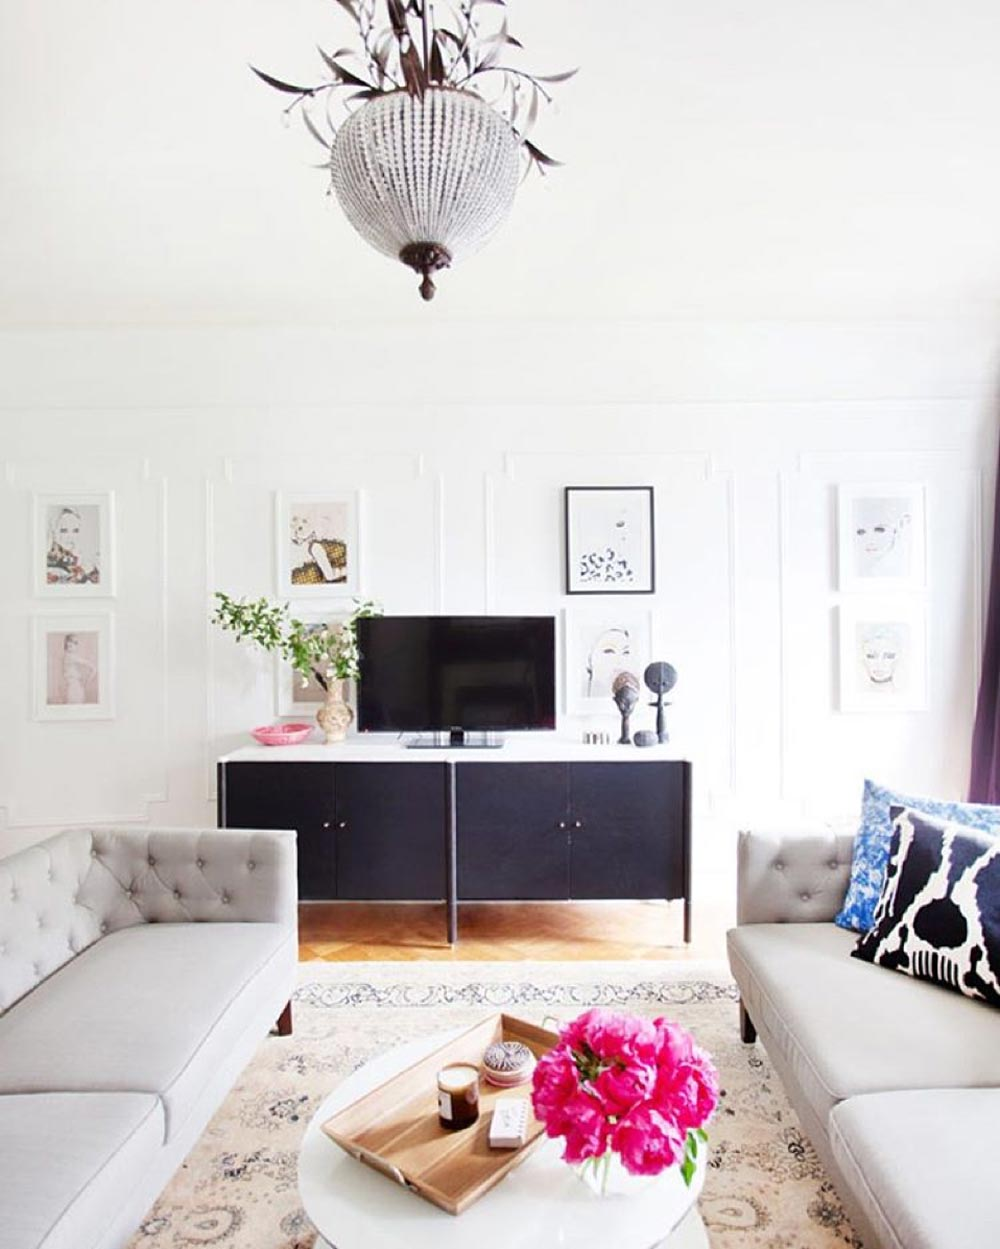 Delightful 15 Fabulous Interior Designers To Follow On Instagram, On Design*Sponge